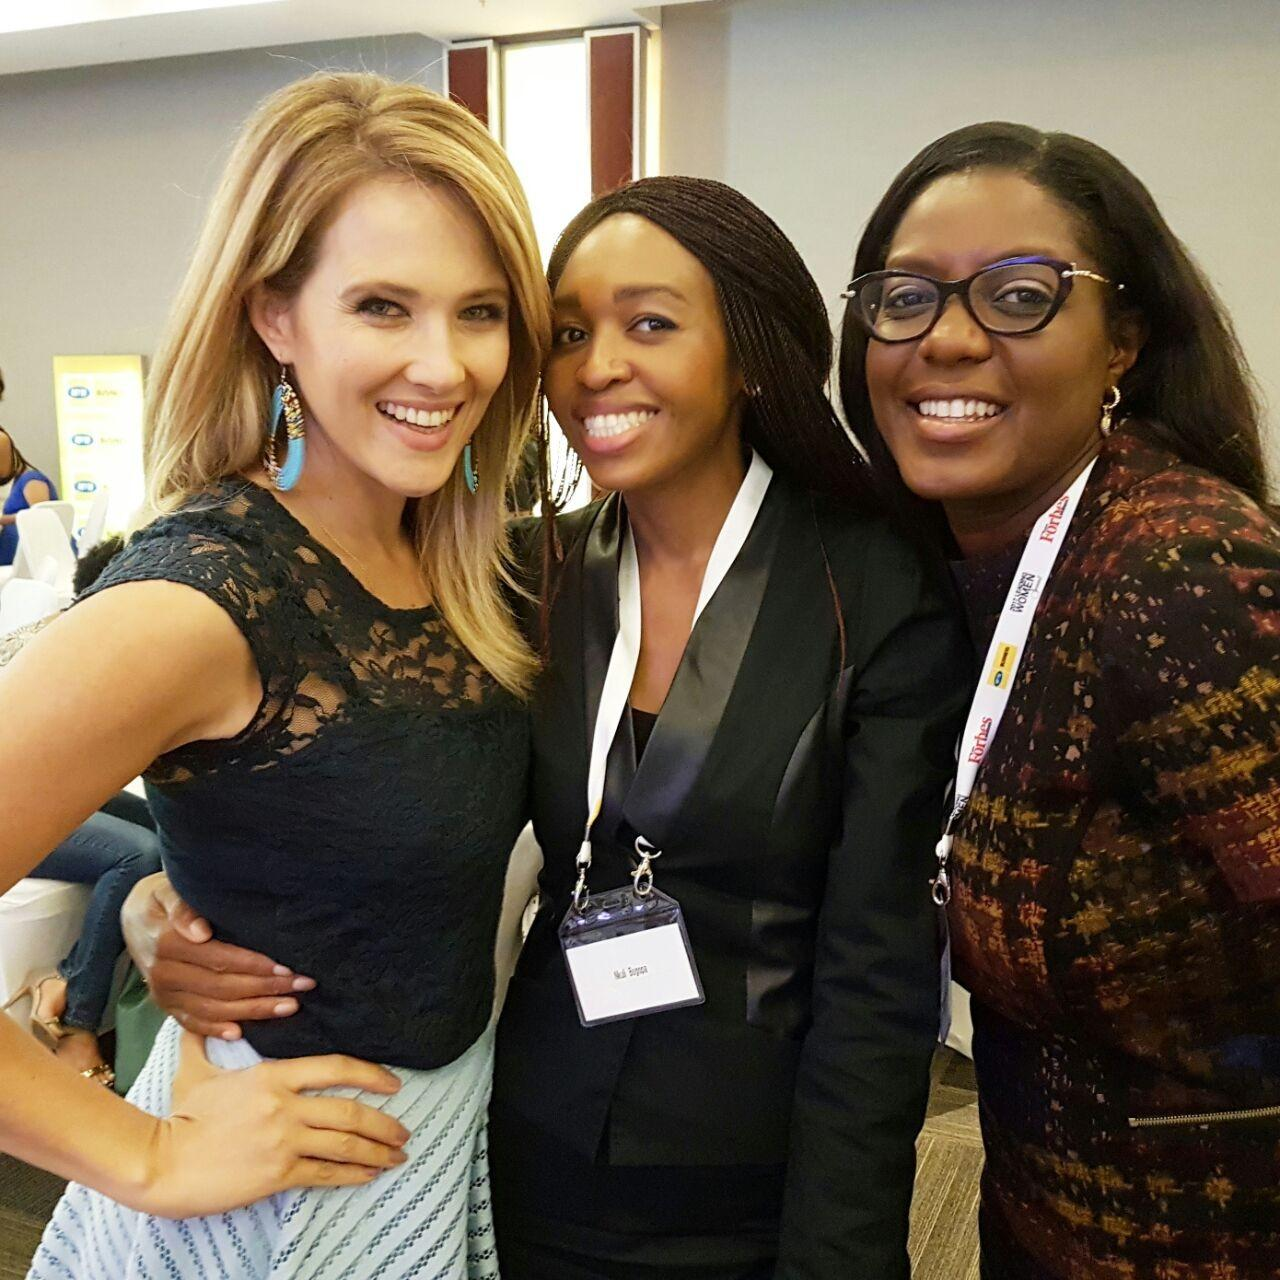 Catherine Constatinides, Nkuli Bogopa, and Monica Musonda At the Forbes Leading Women Summit on International Women's Day